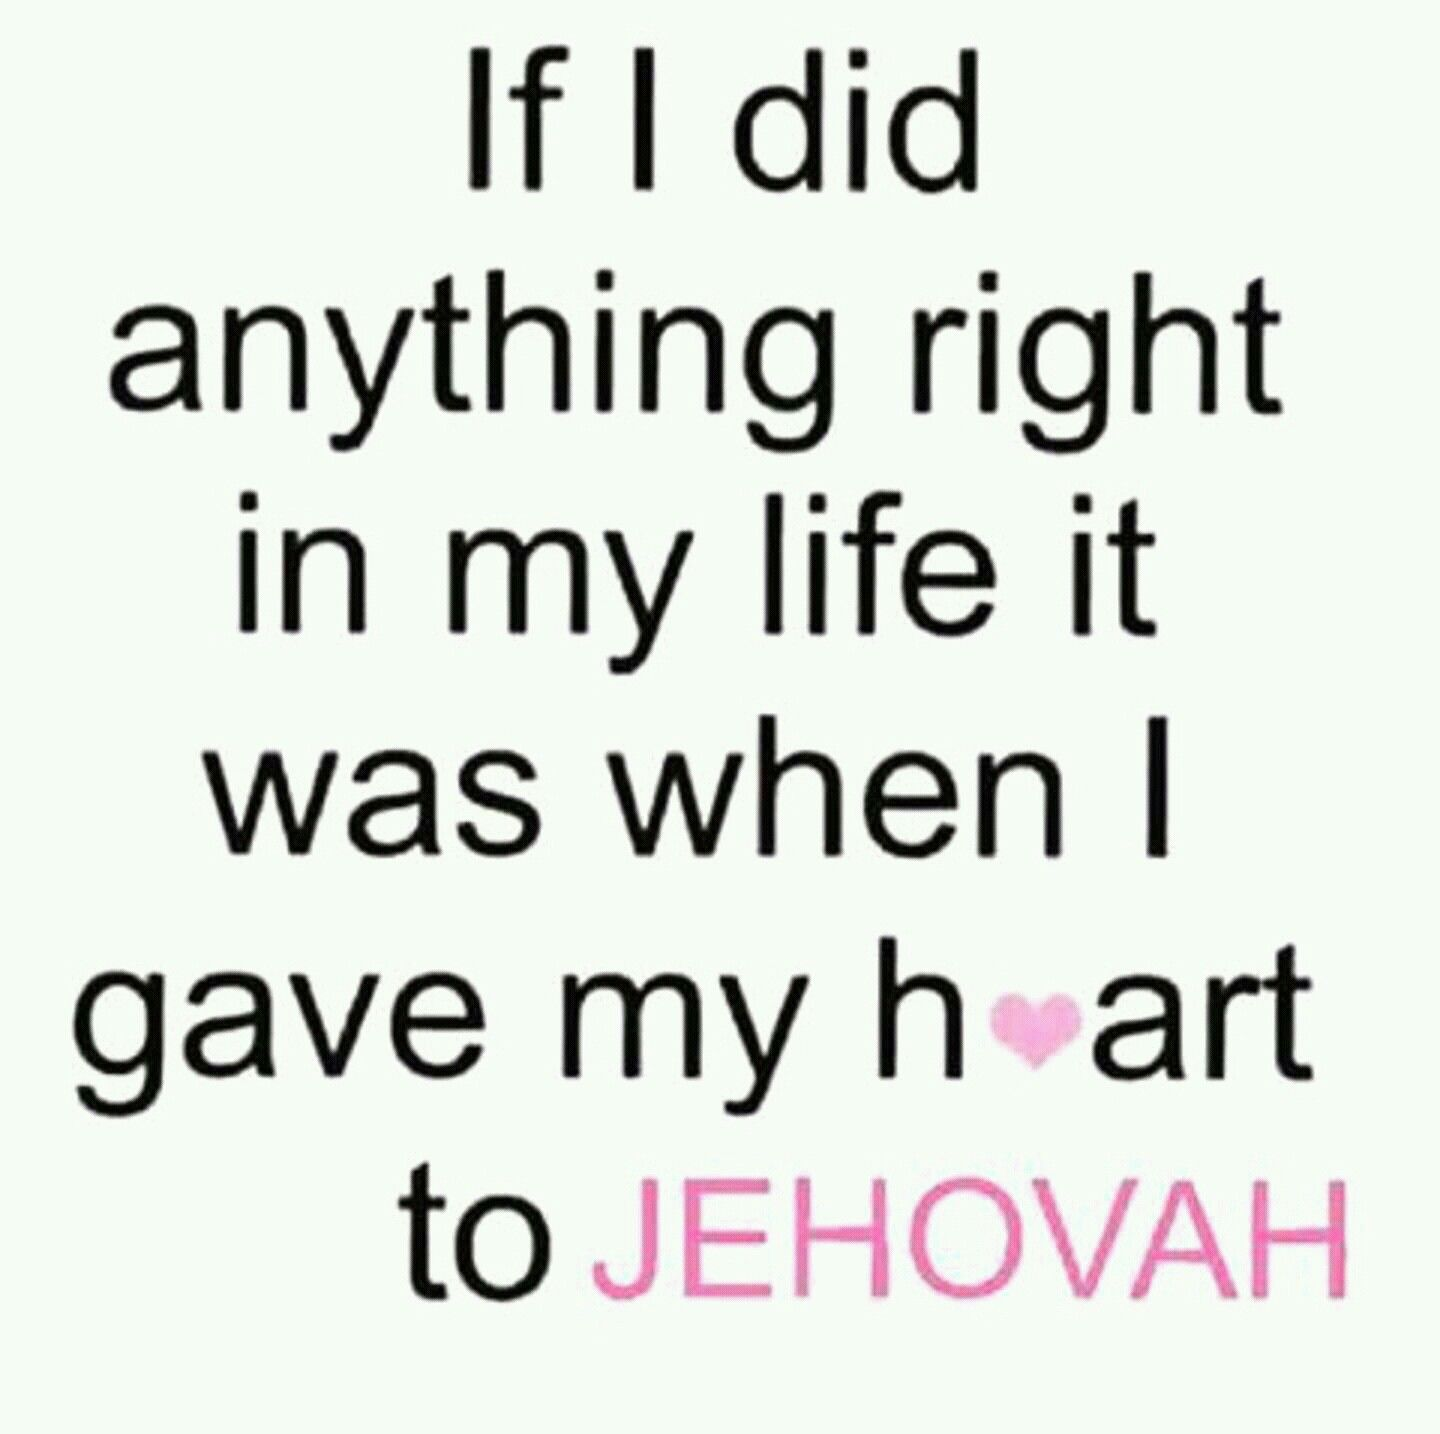 Very Short Love Quotes So Very True.about The Only Right Decision This Far Jehovah's